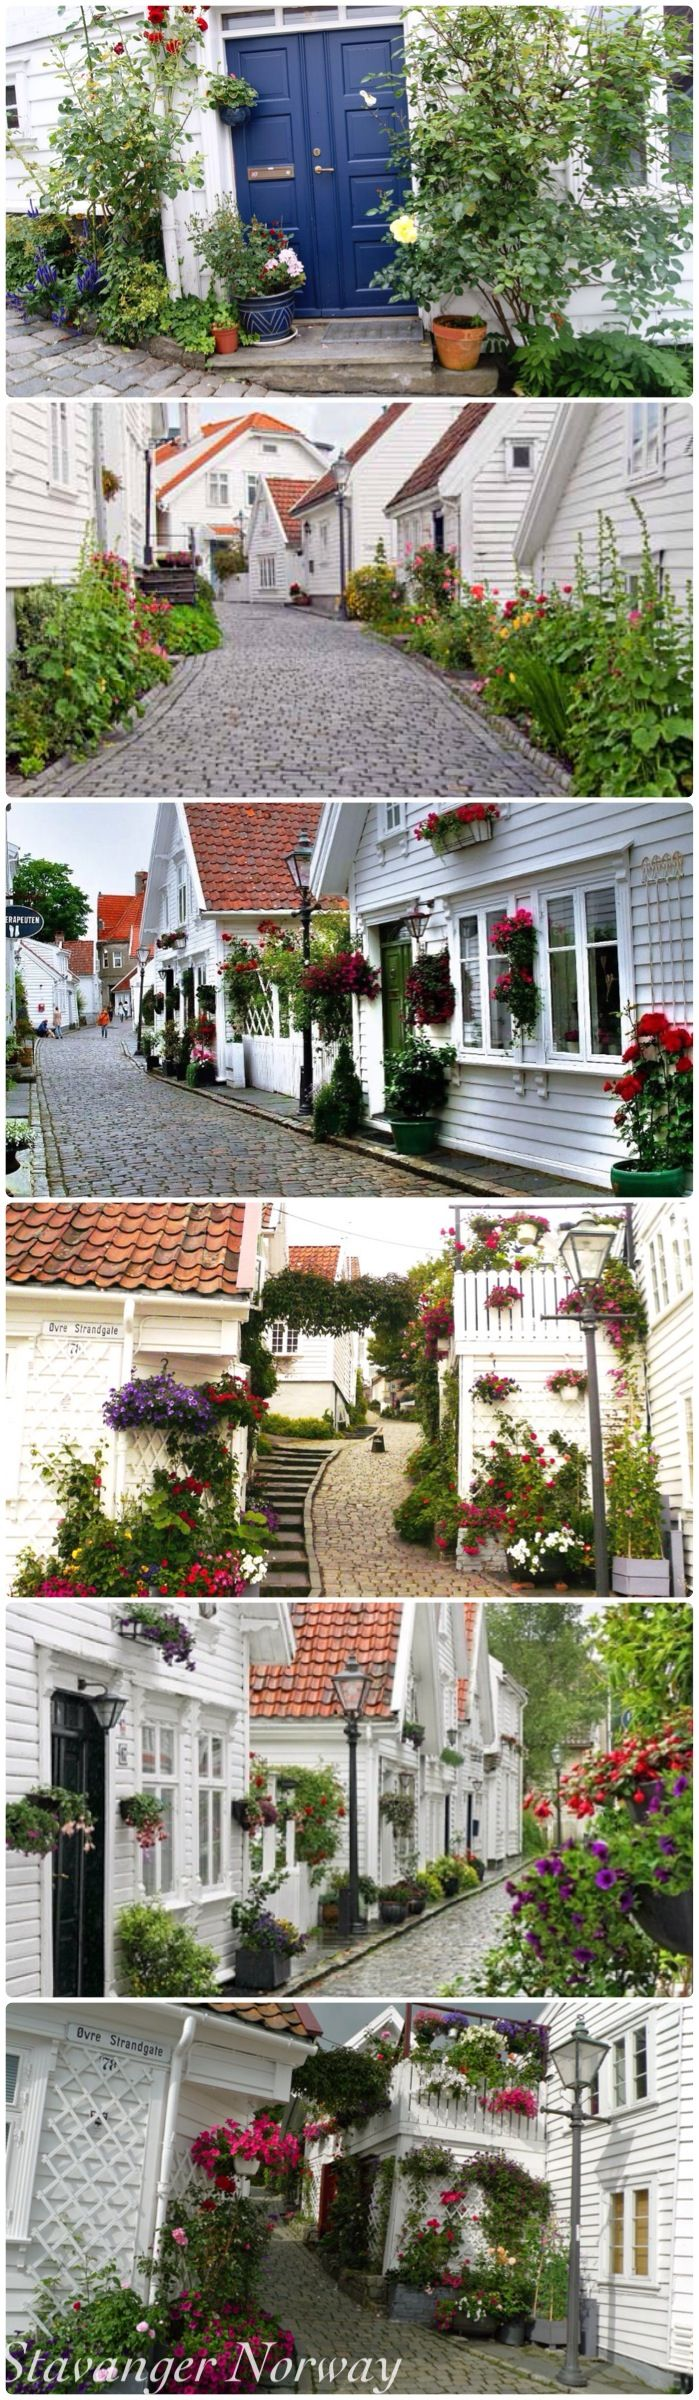 """Stavanger Norway """"Norway Beautiful side yards!  The more I see of Norway, the more I love it!"""" taken from Pinterest #Regionstavanger"""